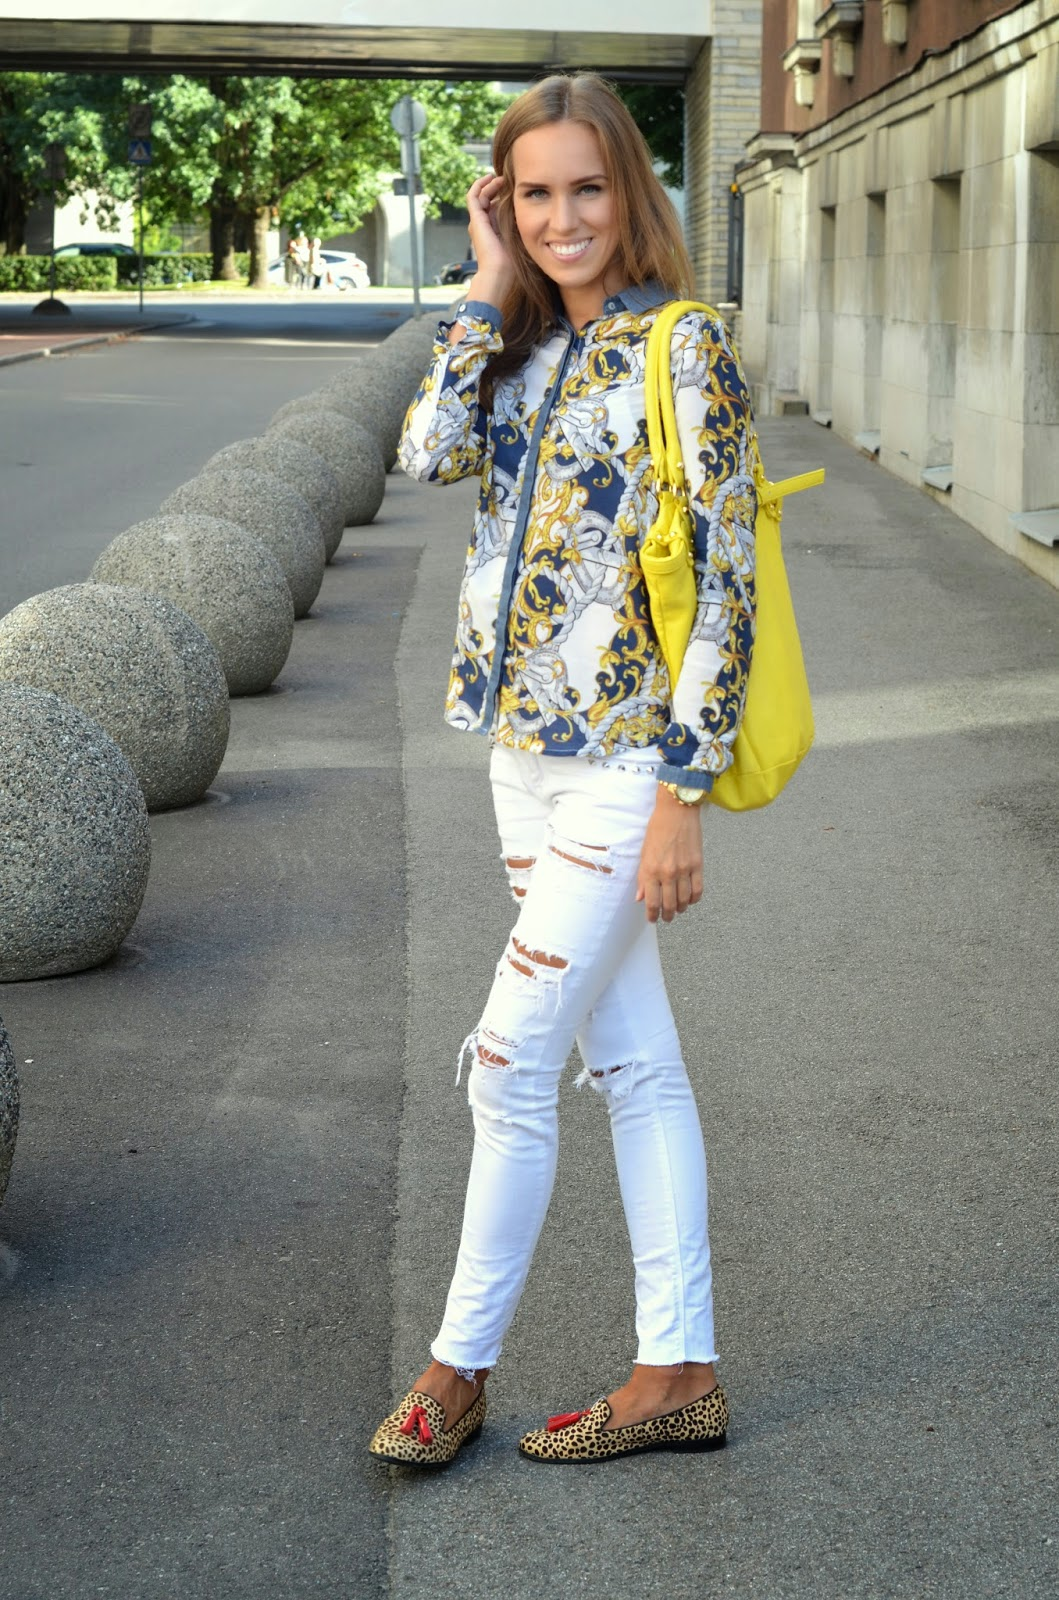 leopard fur flats white jeans yellow bag print top